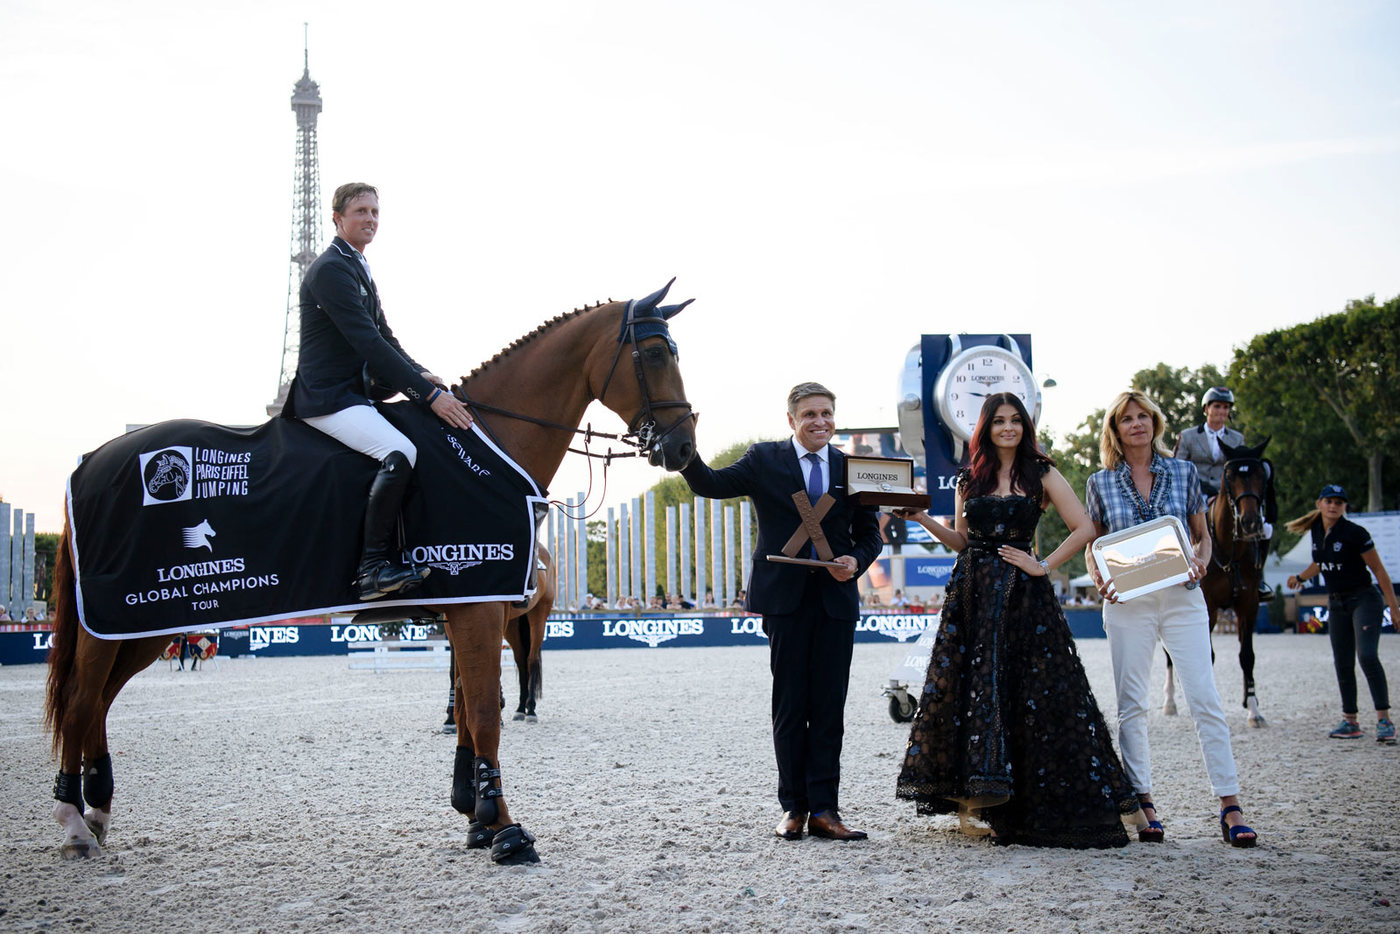 Longines Show Jumping Event: Longines Paris Eiffel Jumping: A thrilling weekend of competition filled with Performance and Elegance  3